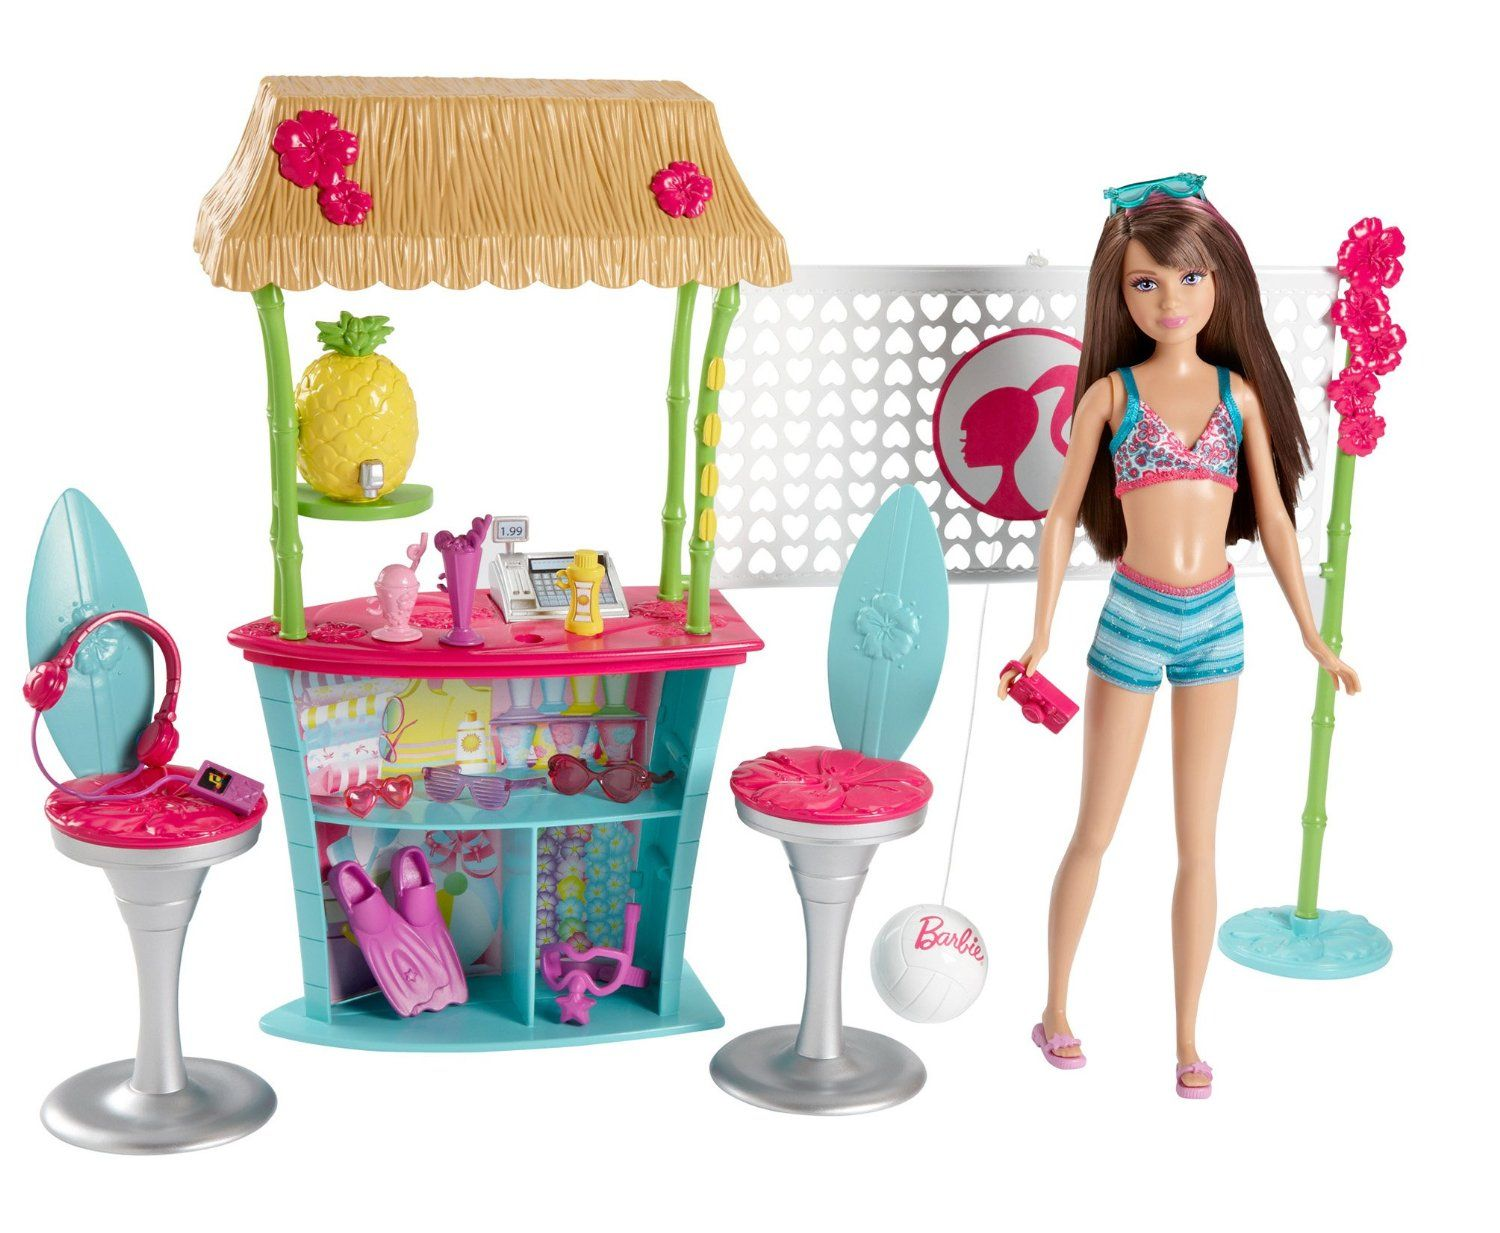 Barbie deluxe furniture stovetop to tabletop kitchen doll target - Barbie Sisters Skipper Doll And Tiki Hut Playset Only 13 50 Lowest Price